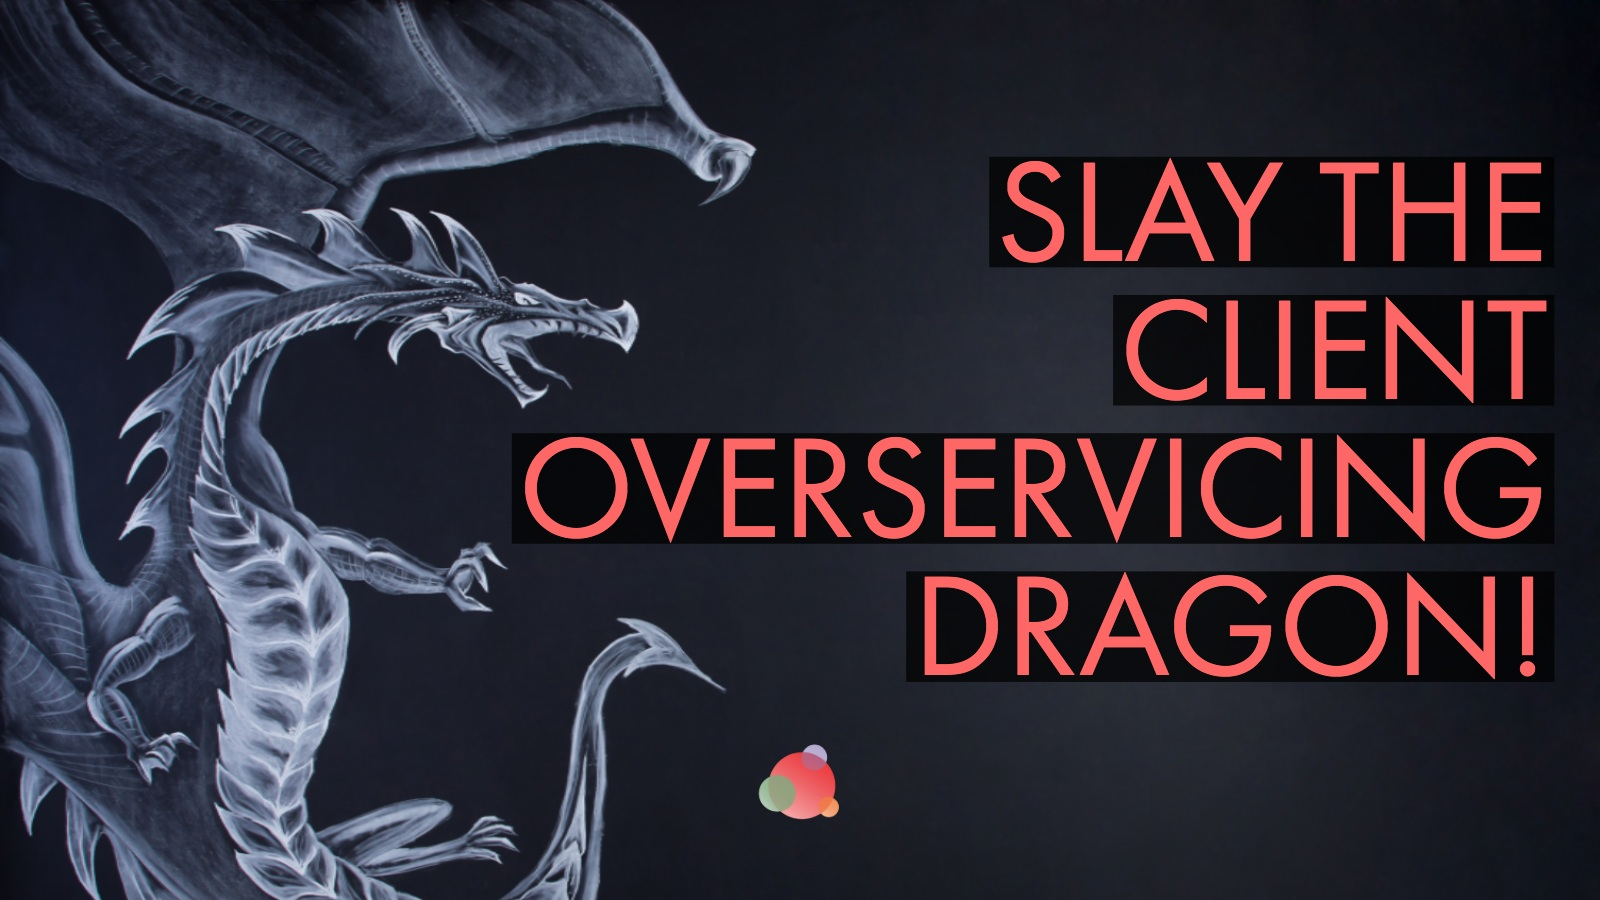 Slay the Over-Servicing Clients Dragon with These Five Questions